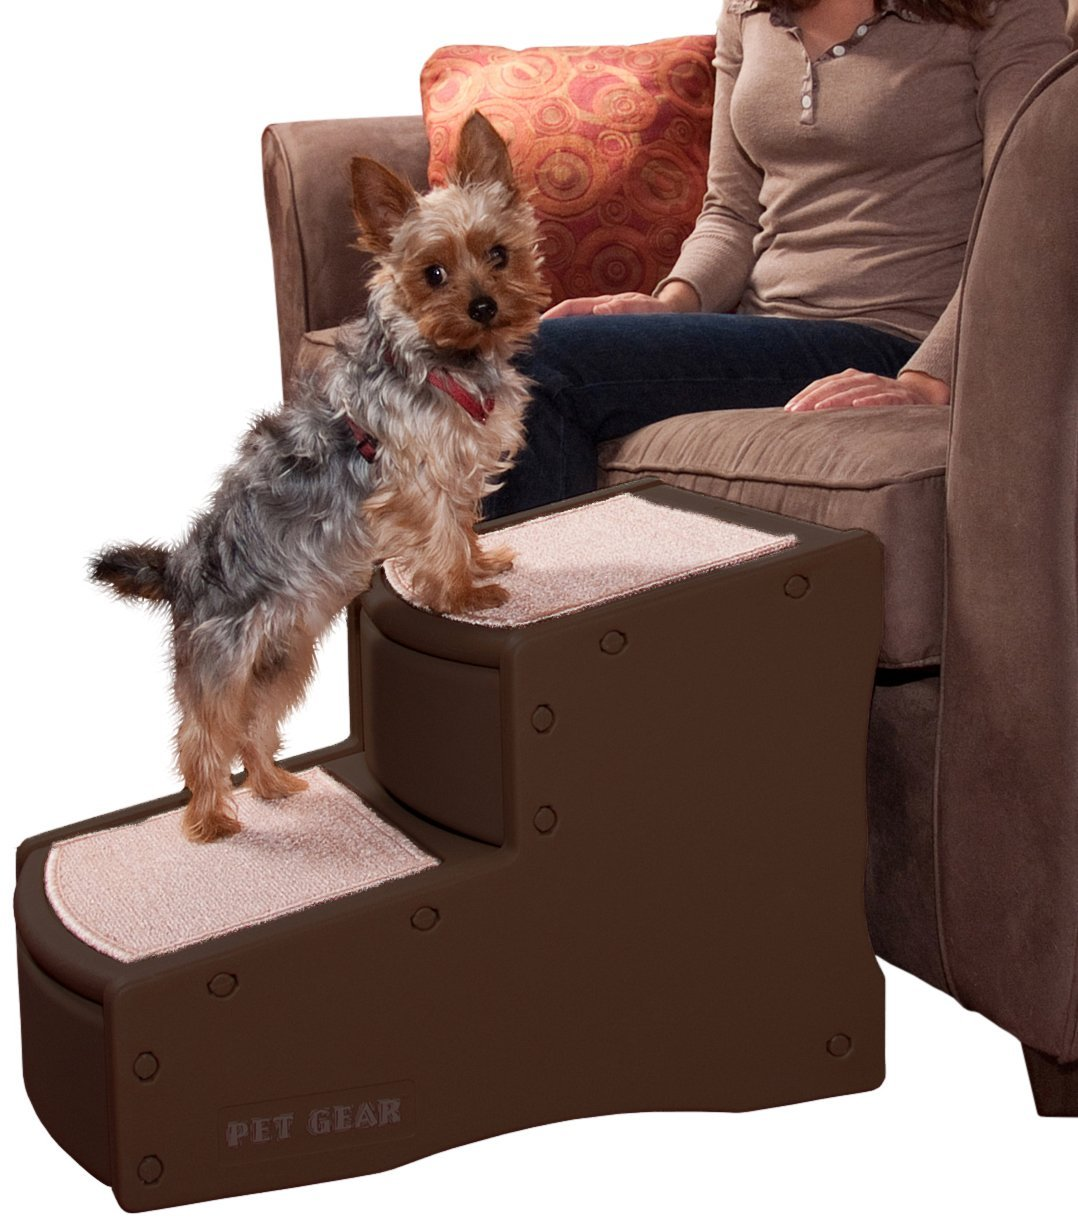 Top 10 Dog Beds And Furniture Products: Ease Of Use, Comfort & Convenience 5